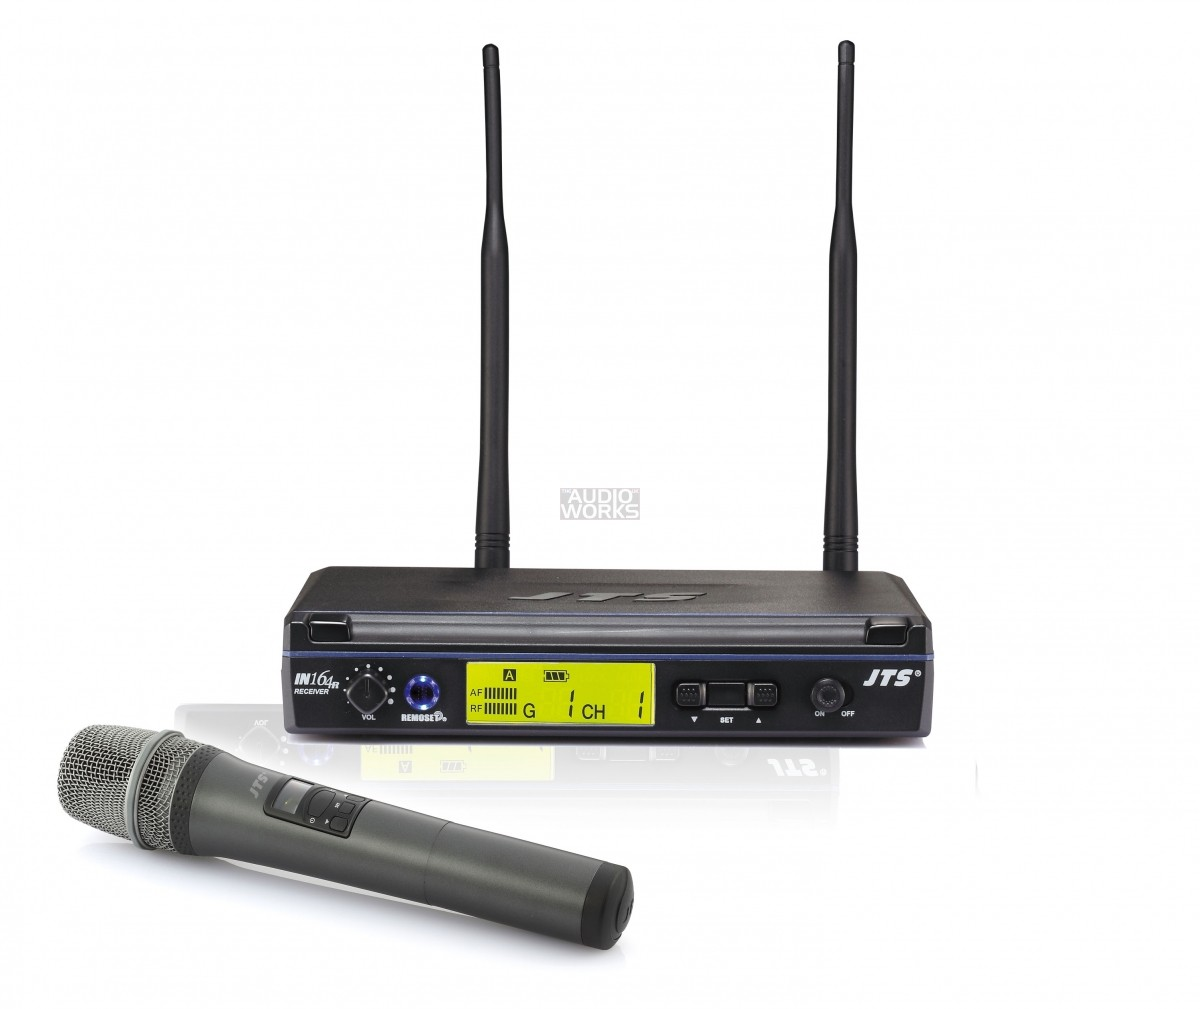 JTS IN164 PROFESSIONAL WIRELESS HANDHELD MICROPHONE SYSTEM